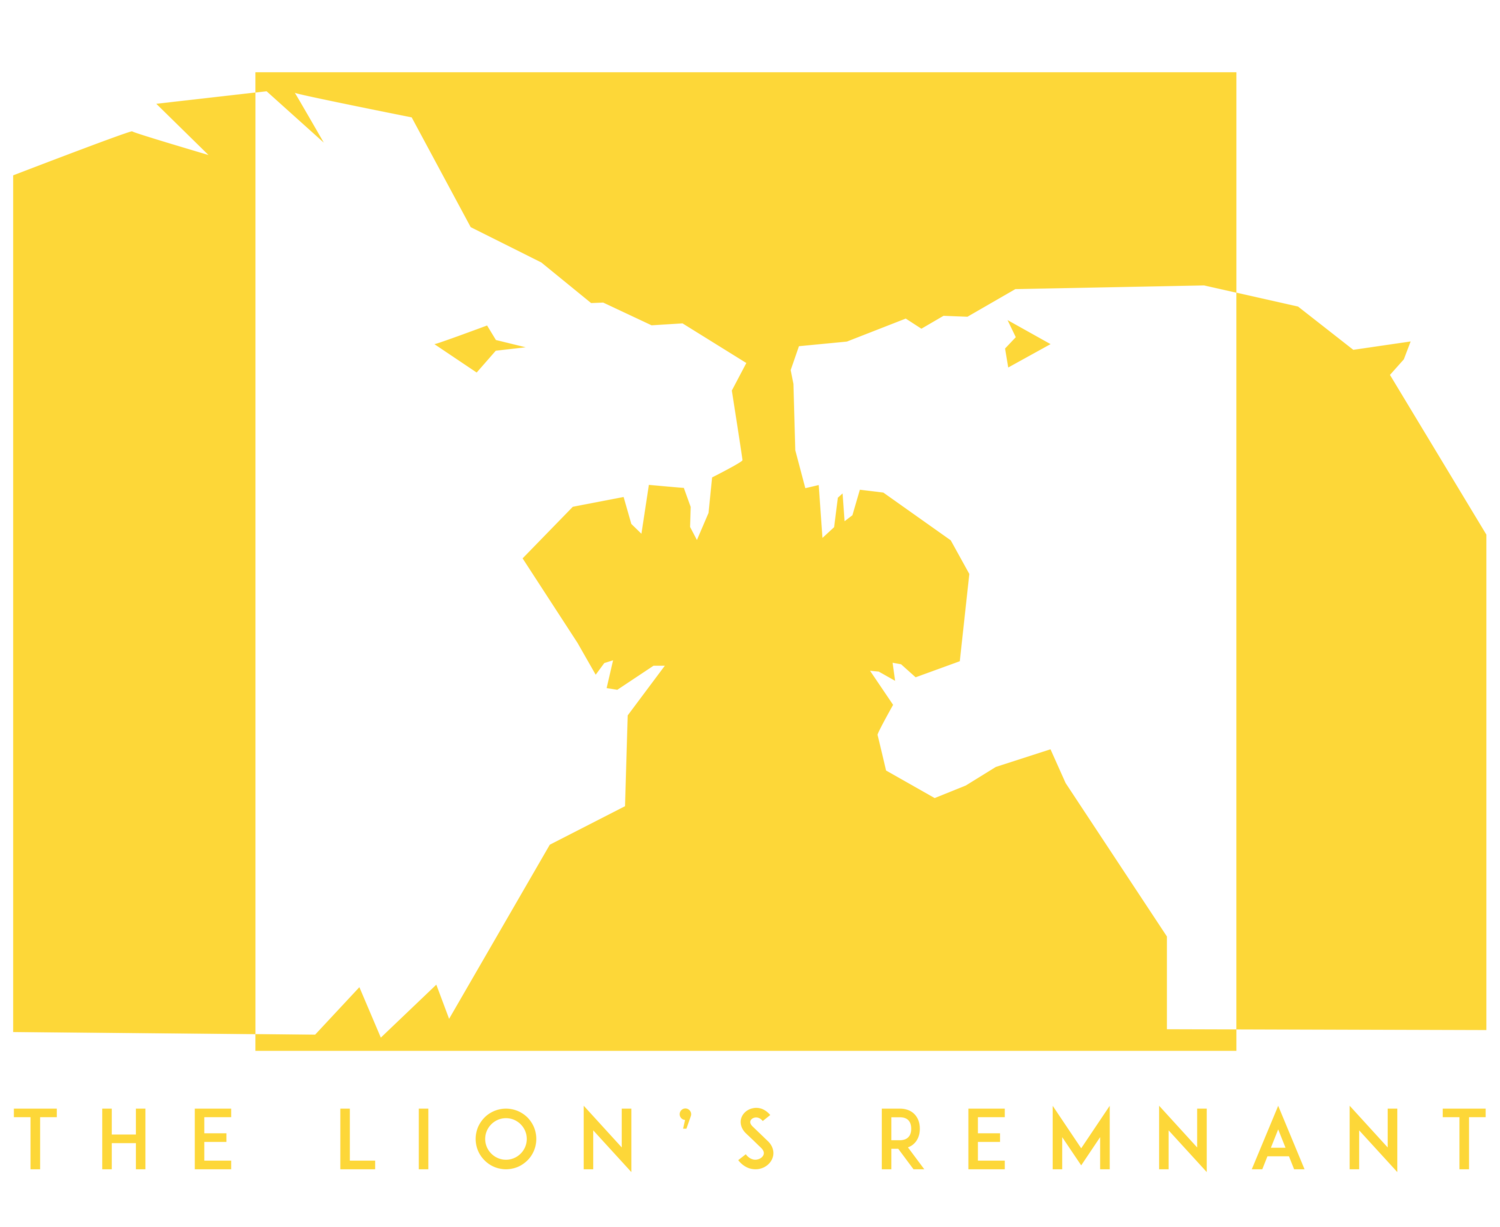 Vision clipart lead the way. Our lion s remnant